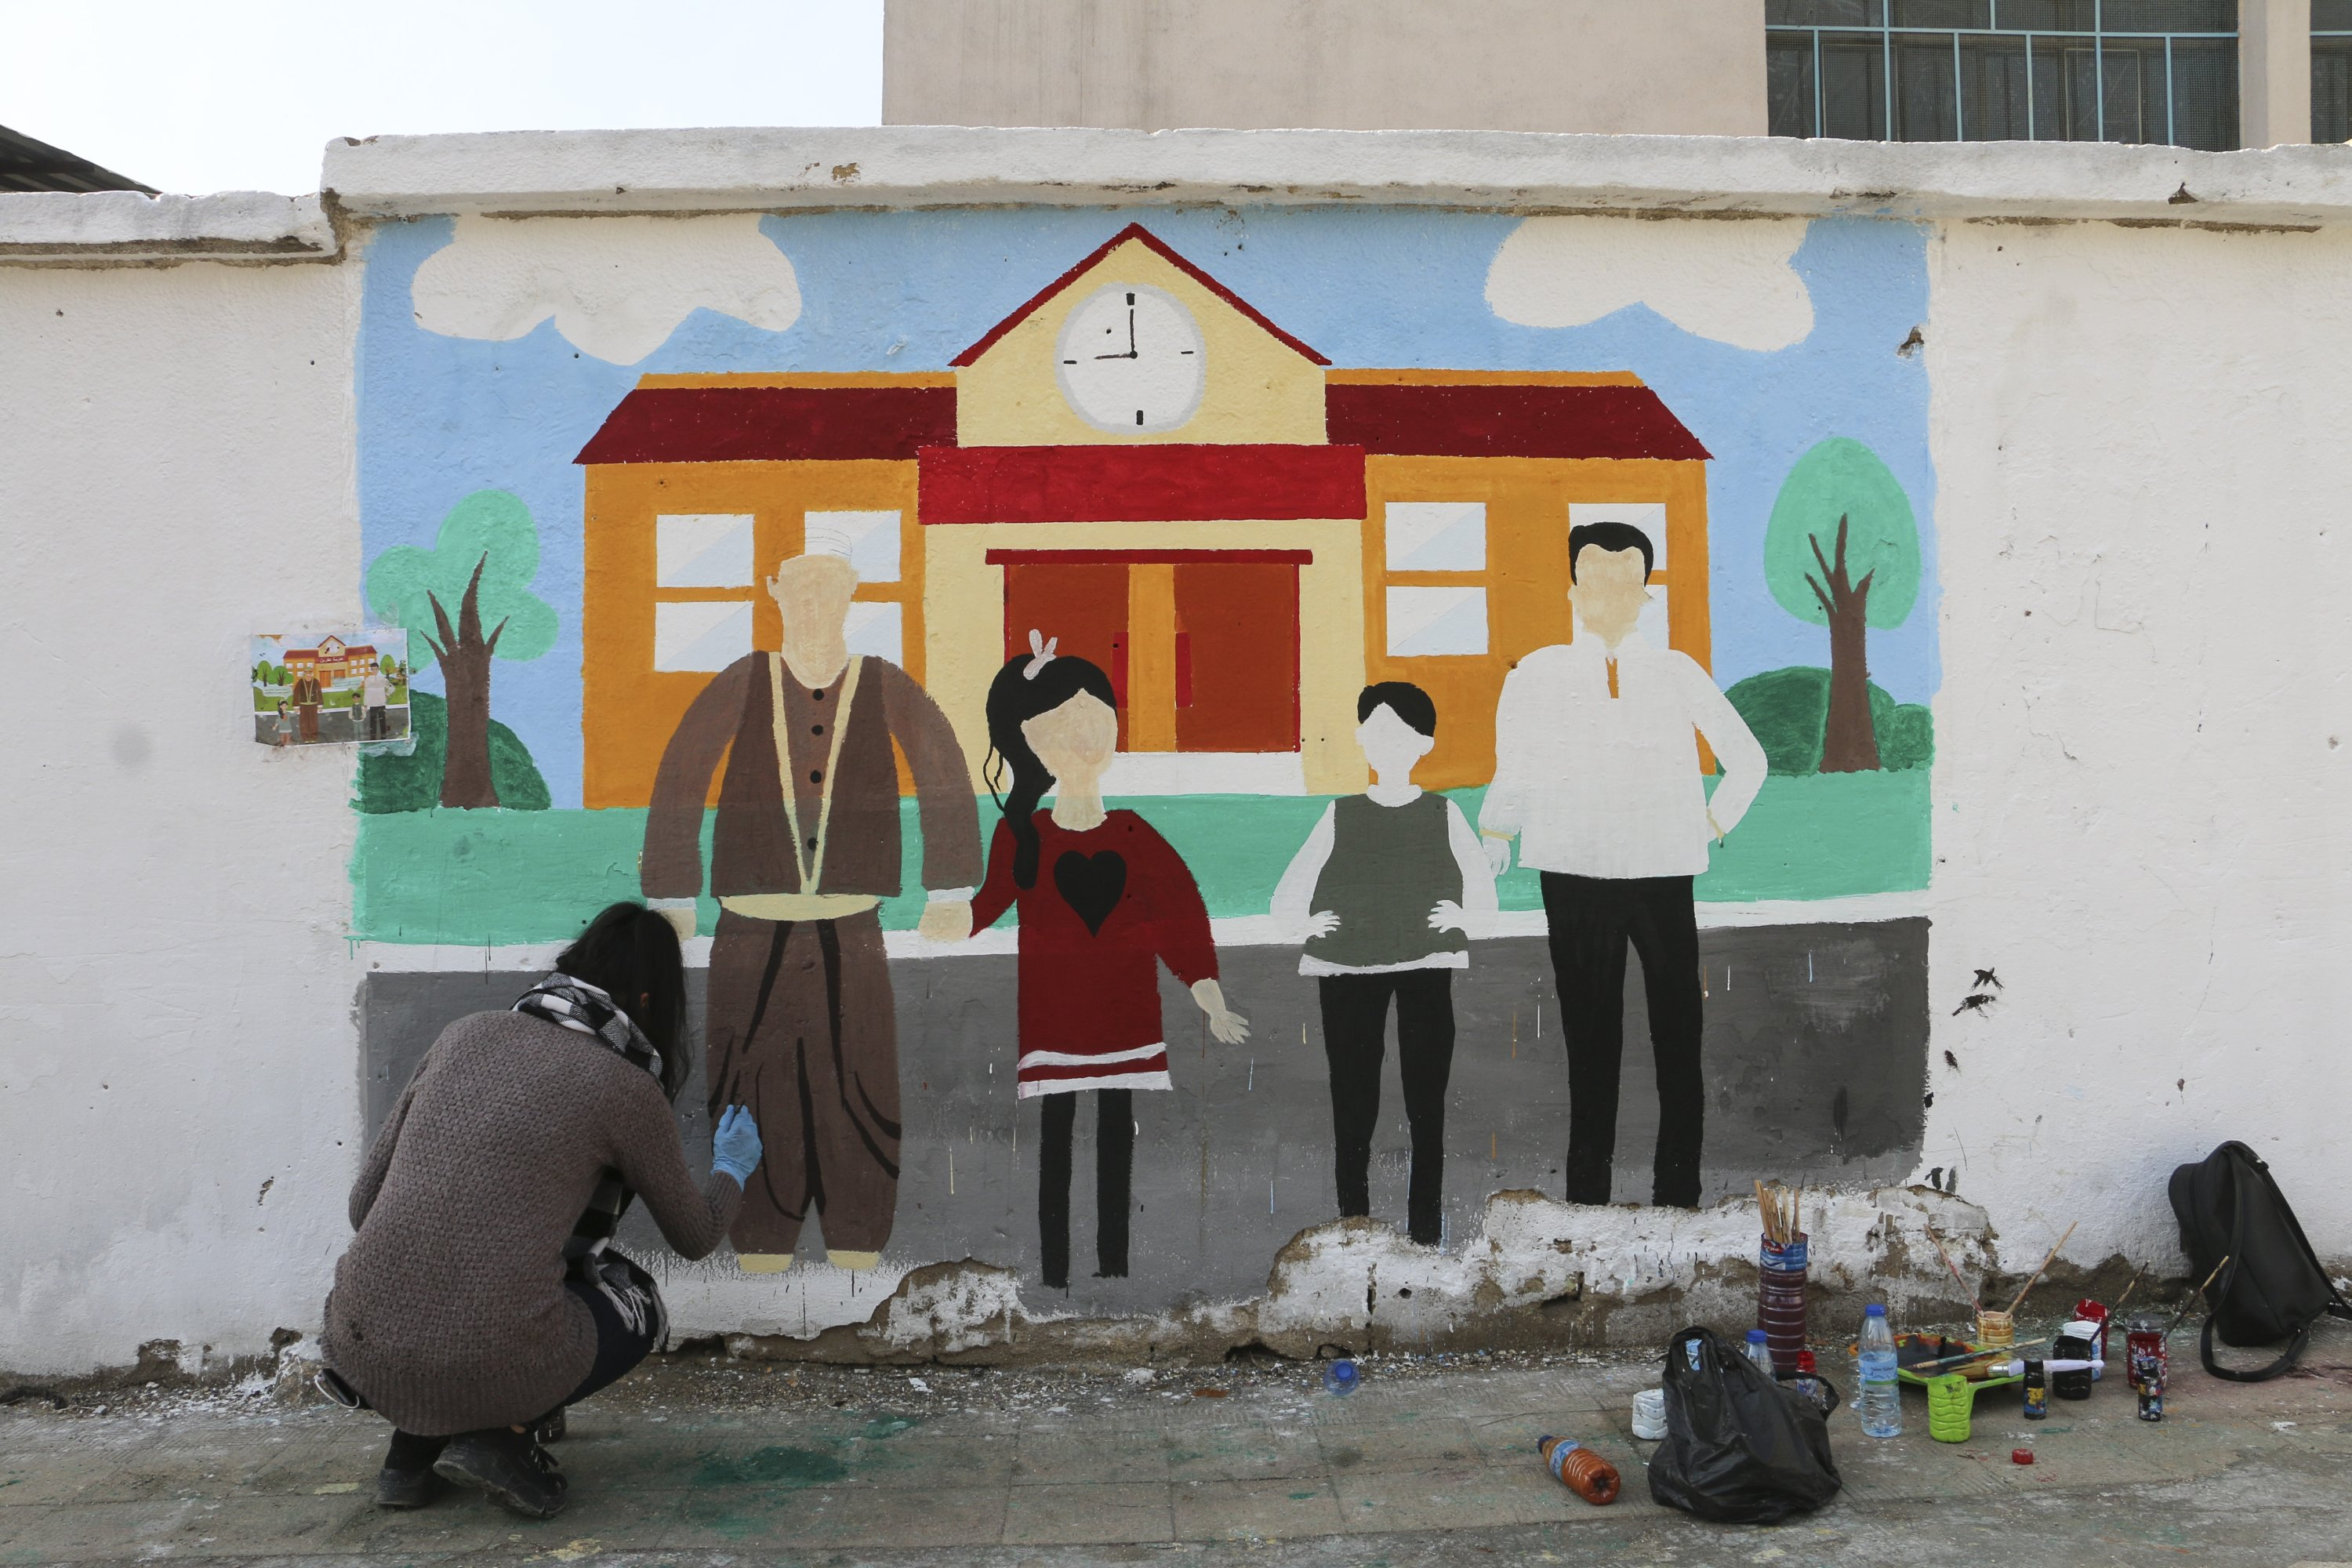 A group of young people decorates the walls of northern Syria's Afrin town with drawings, Feb. 10, 2021. (AA Photo)